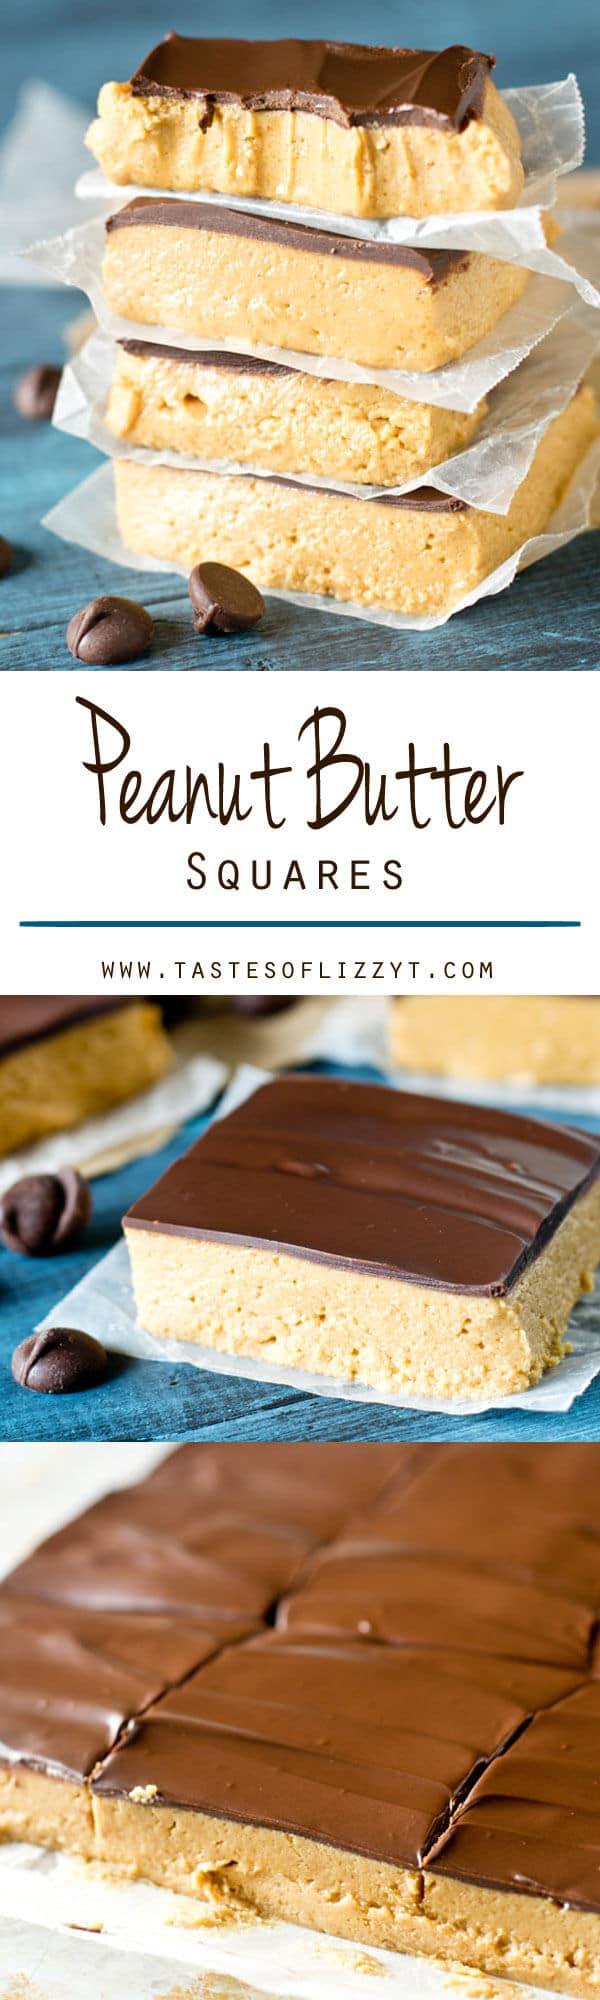 peanut butter squares recipe / homemade reese's cups / easy dessert recipe / no bake dessert / chocolate / peanut butter / school lunch Peanut Butter Squares are the classic school lunchroom treat from your childhood. This no-bake dessert has peanut butter topped with a layer of chocolate.